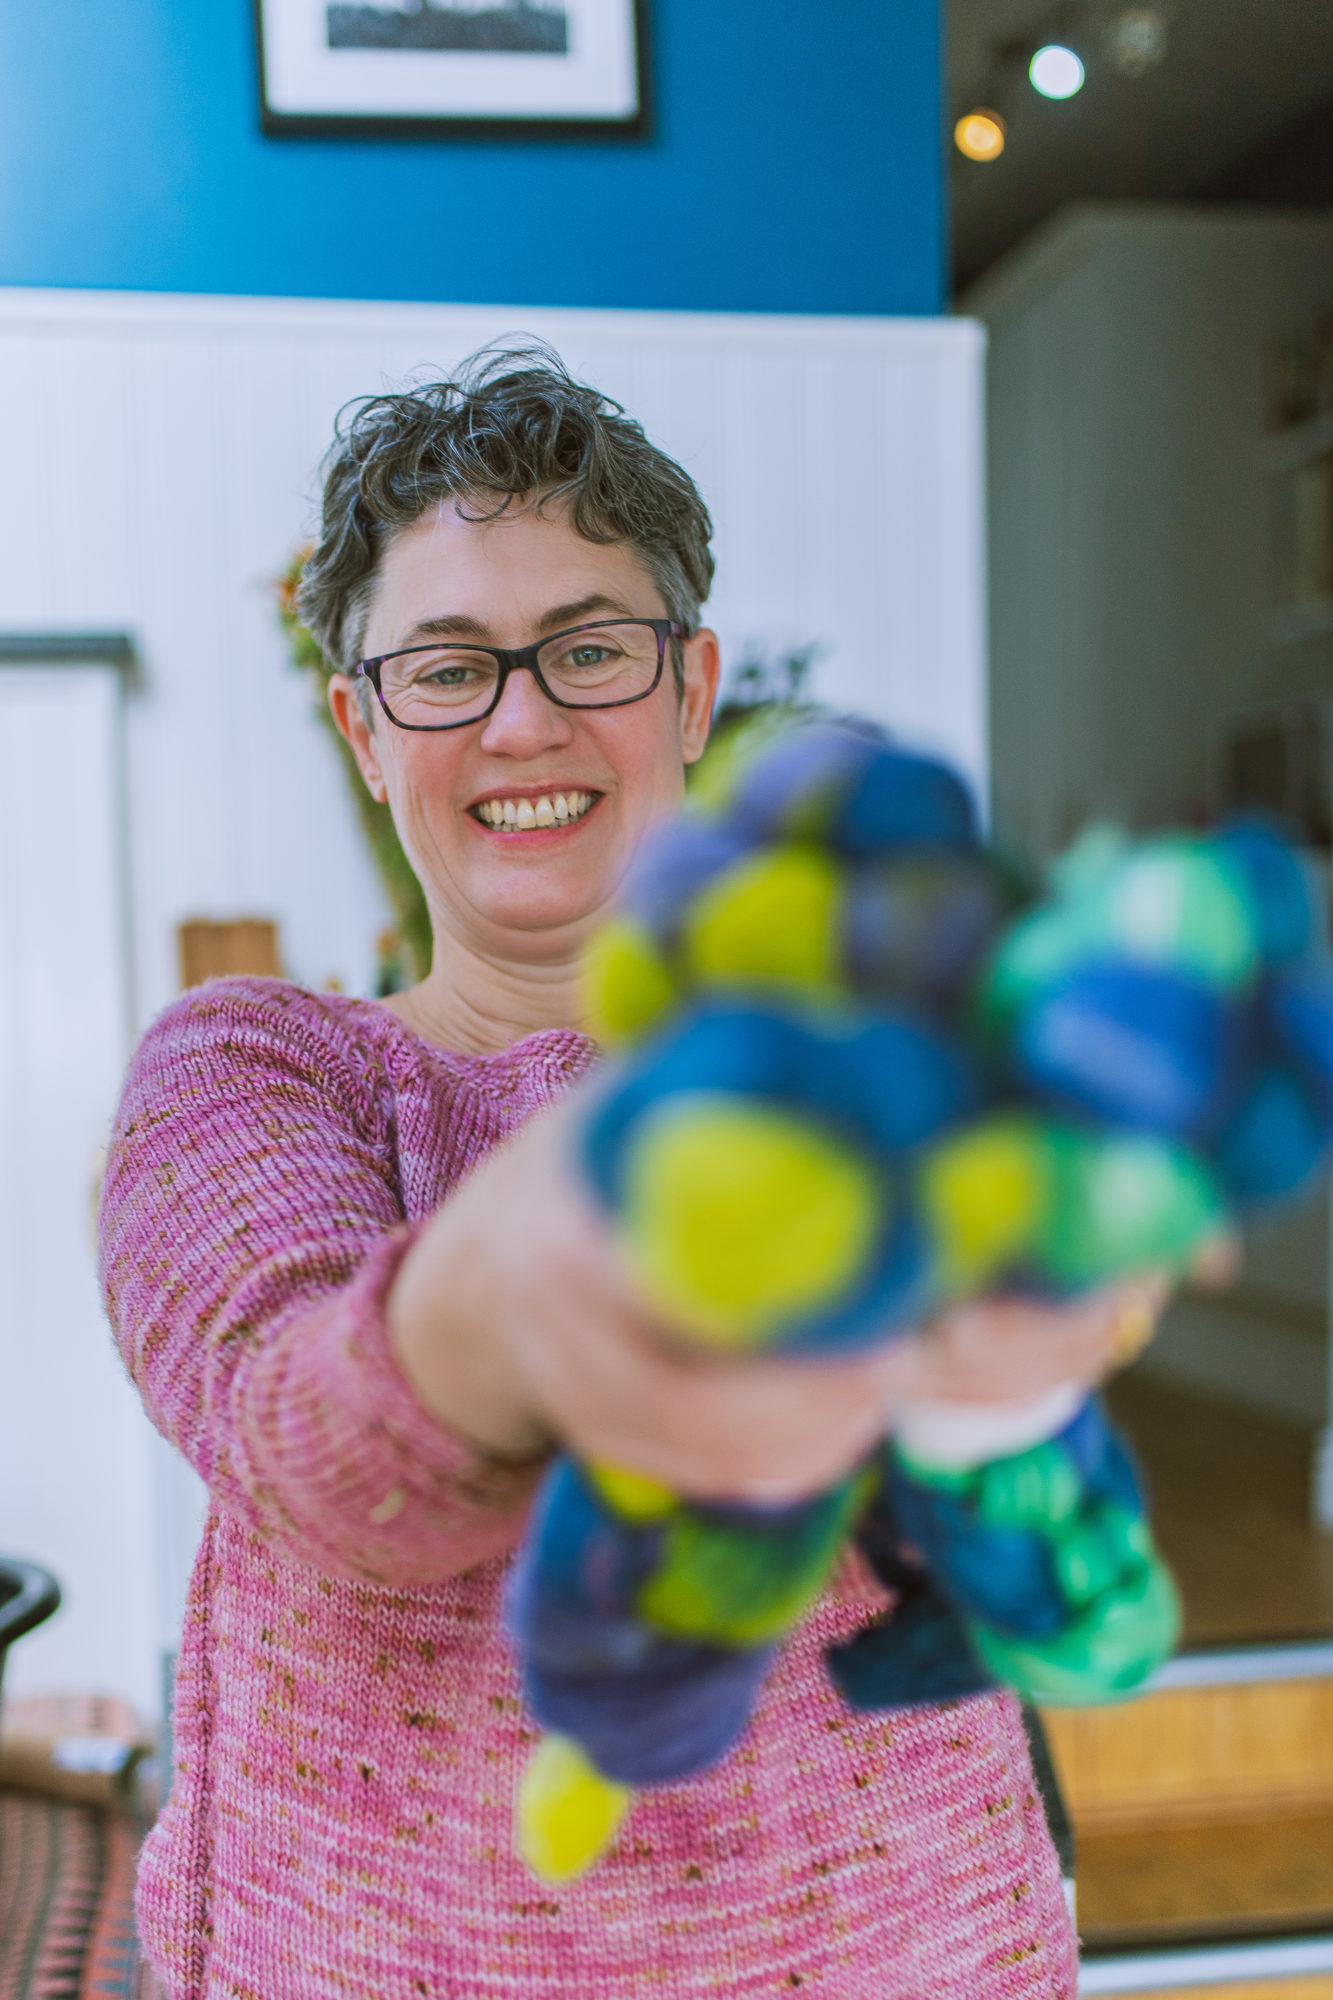 Rachael Prest holds a selecton of coloured fibres for spinning. Photo by Gemma Regalado Bristol Brand photographer